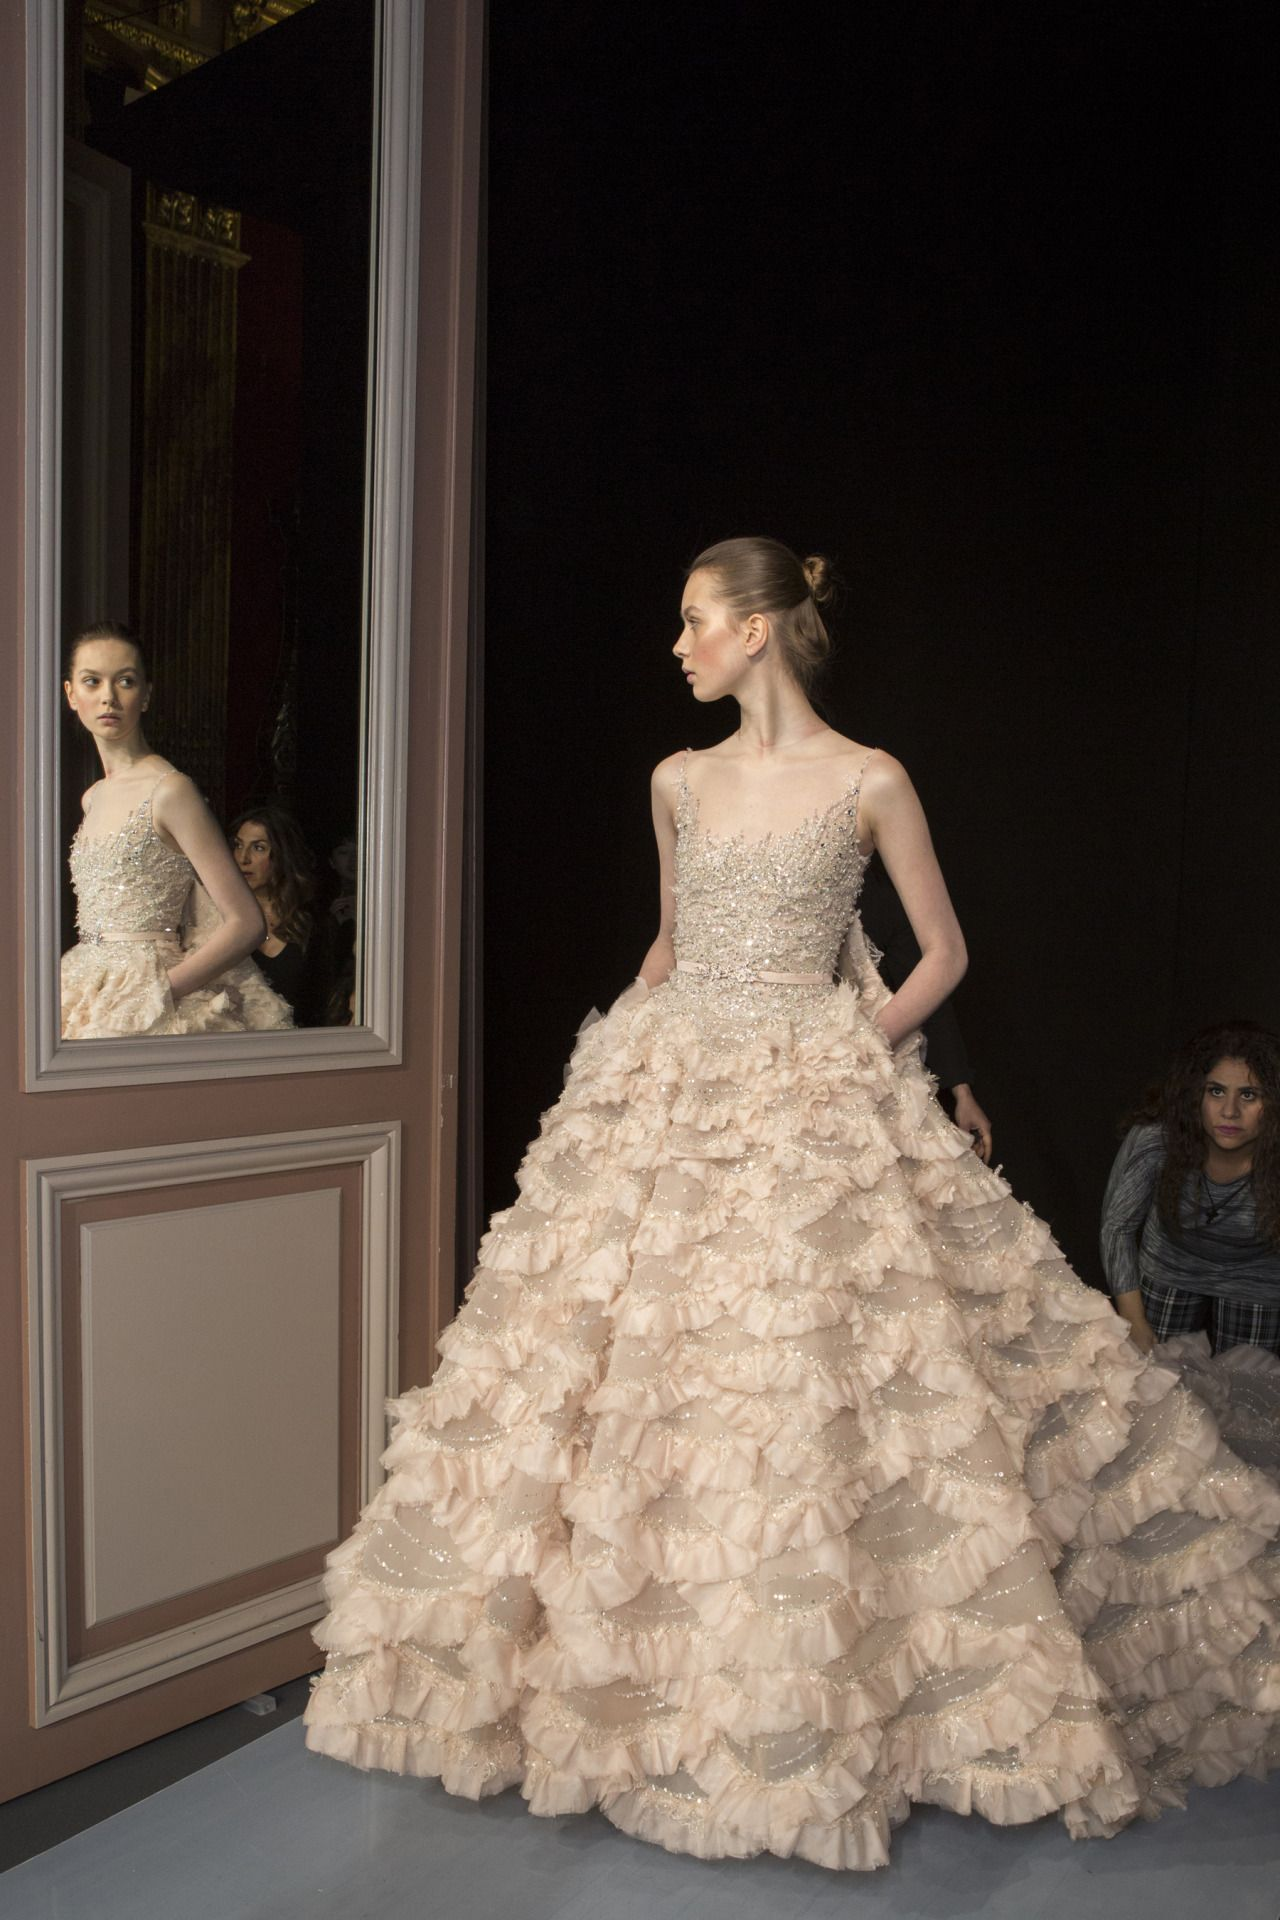 Thefullerview dresses pinterest gowns classy lady and elegant